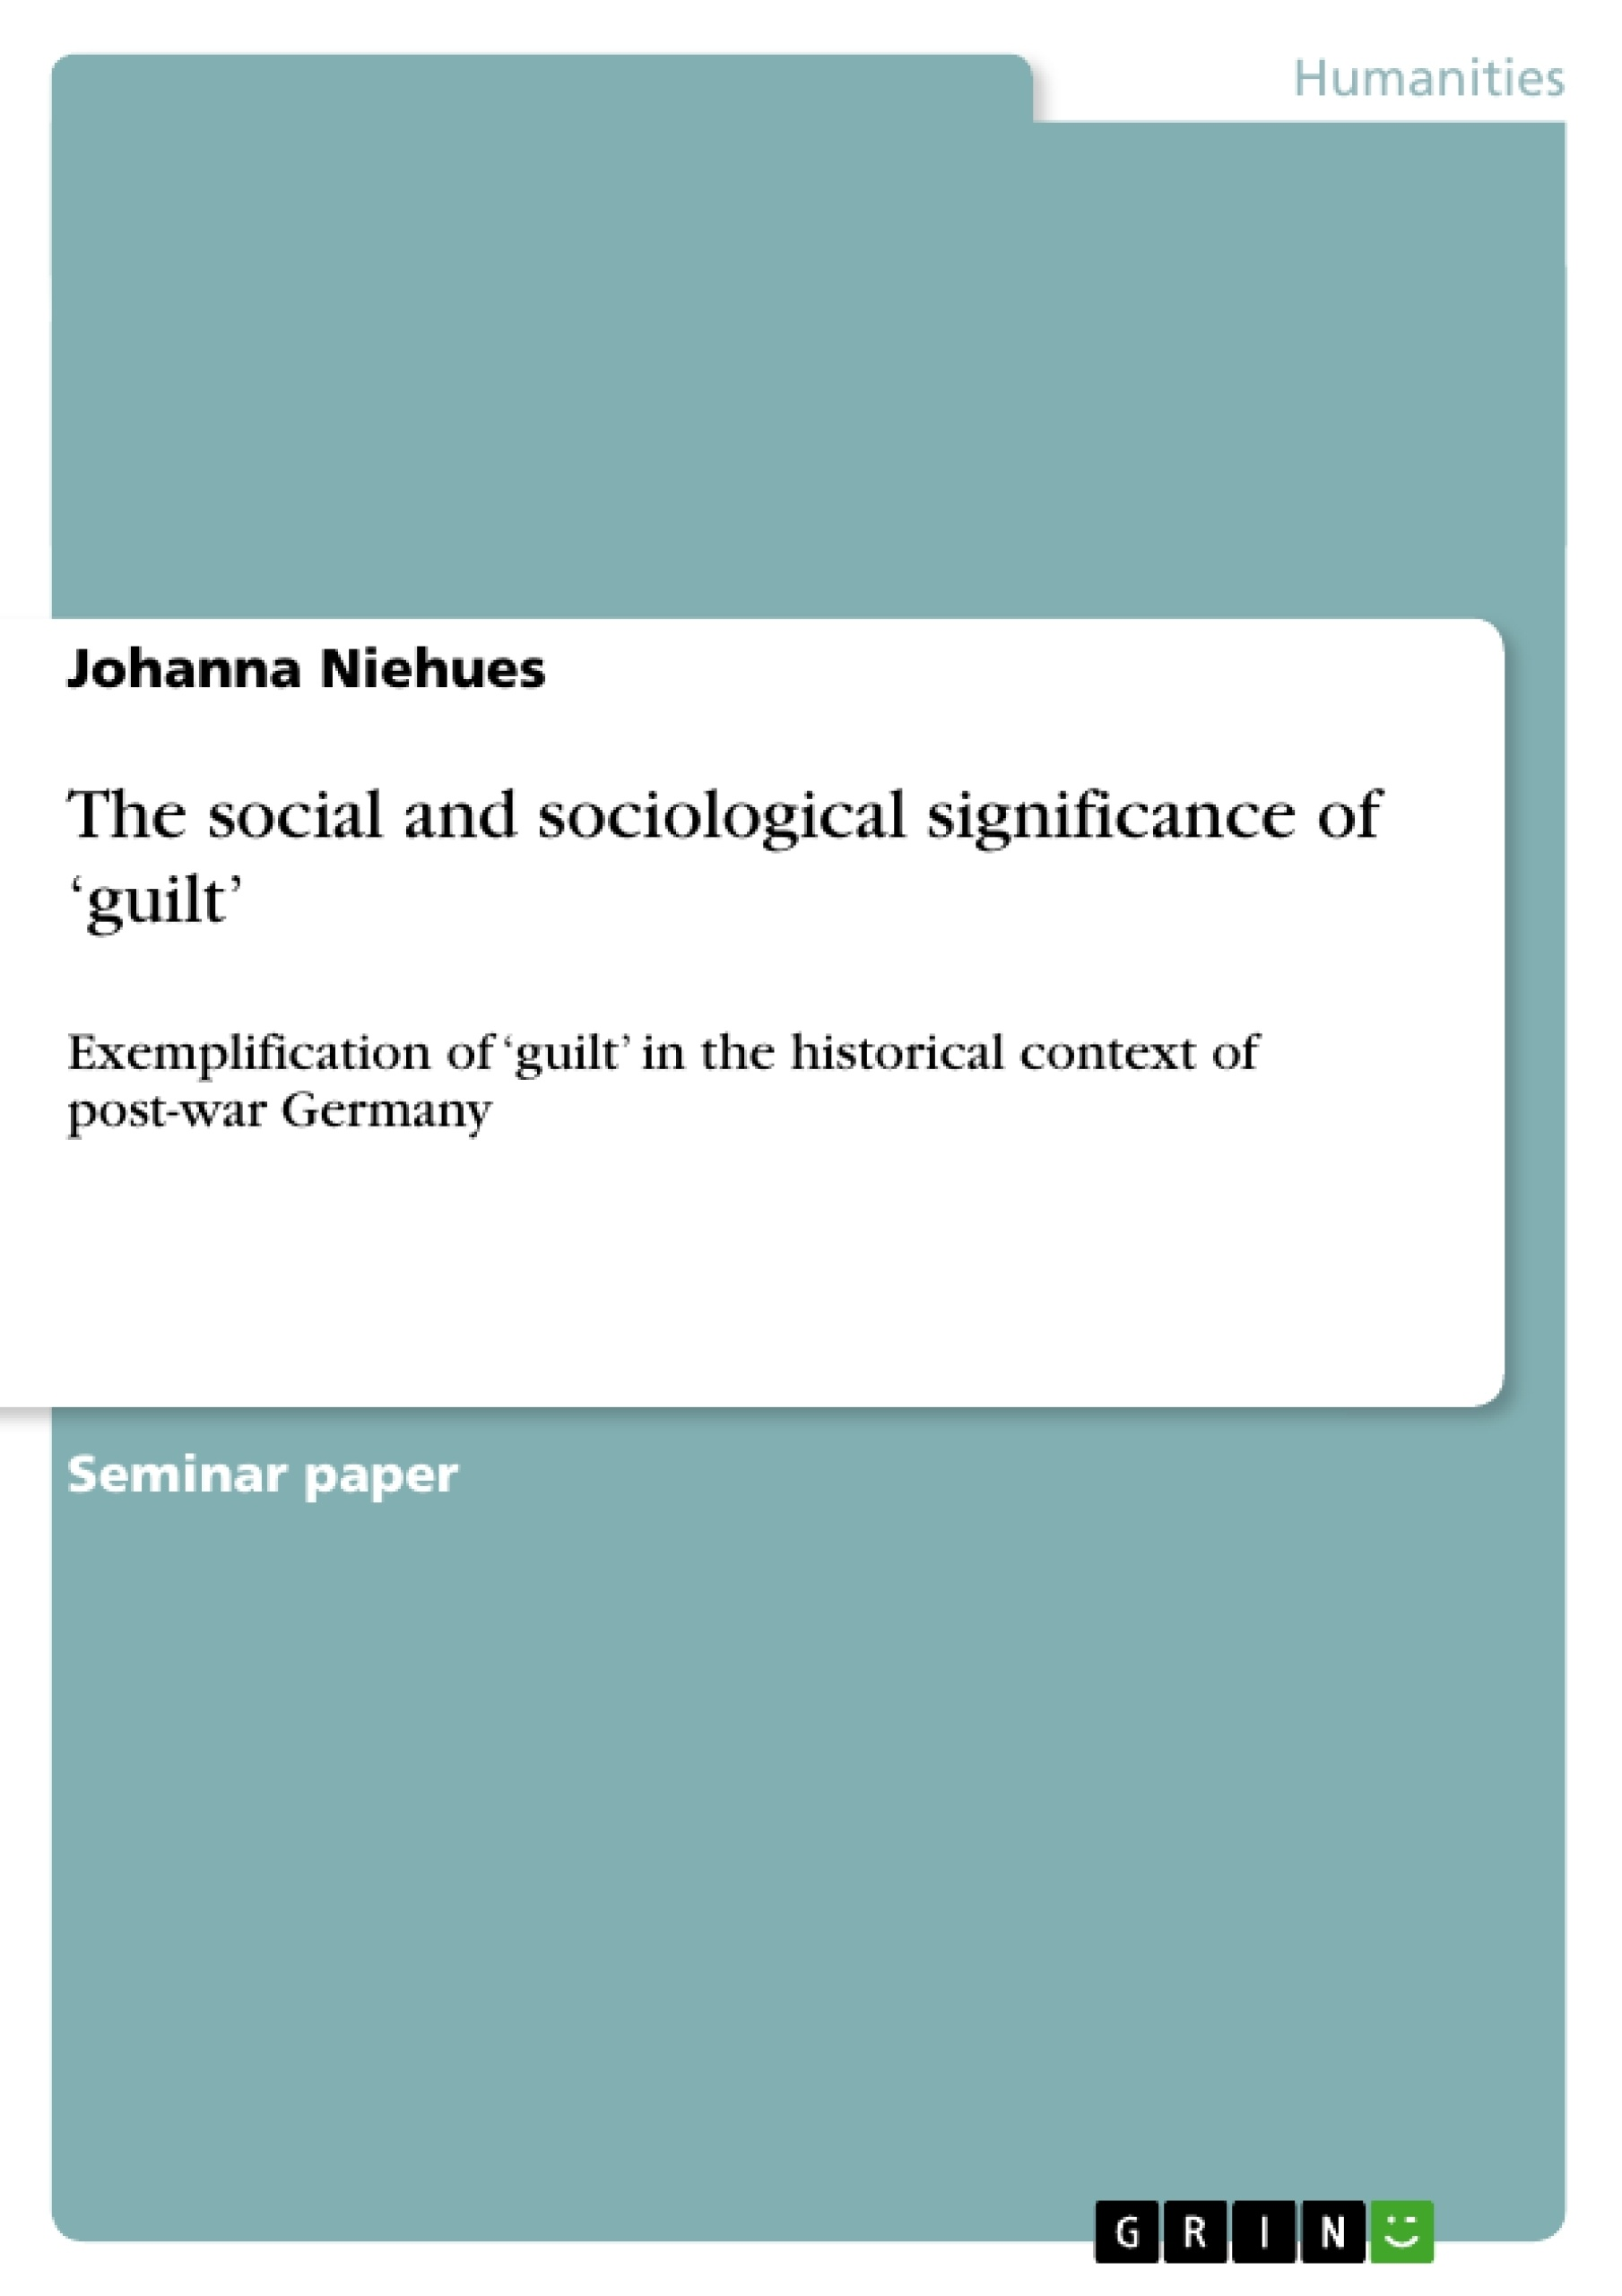 Title: The social and sociological significance of 'guilt'